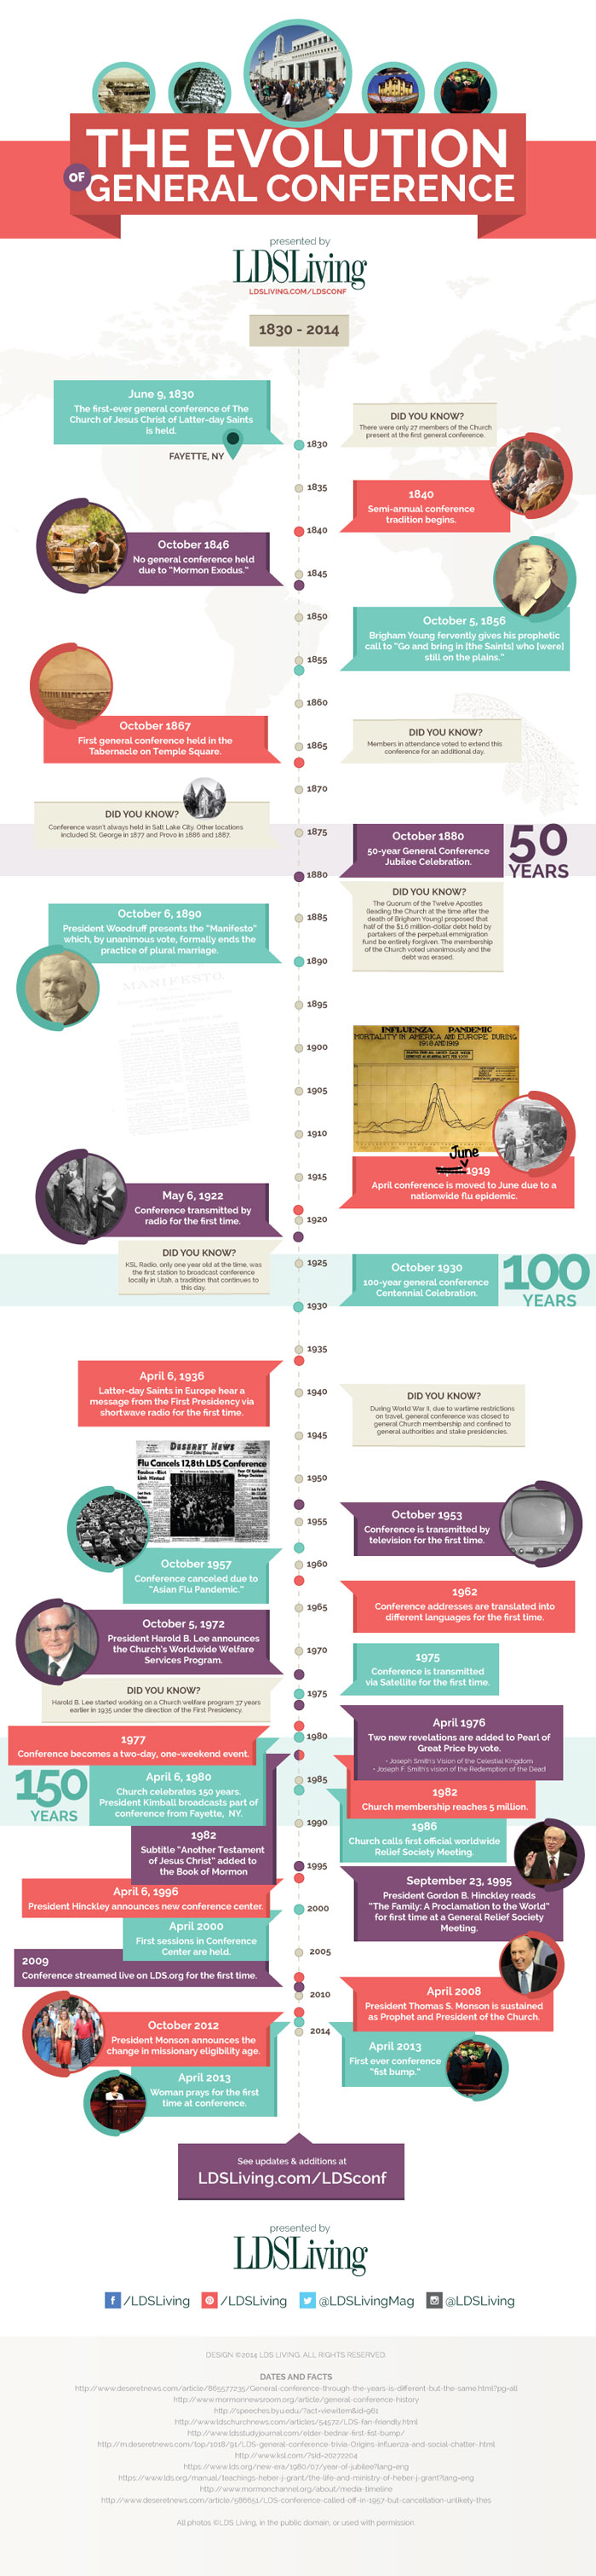 LDS General Conference Through the Years